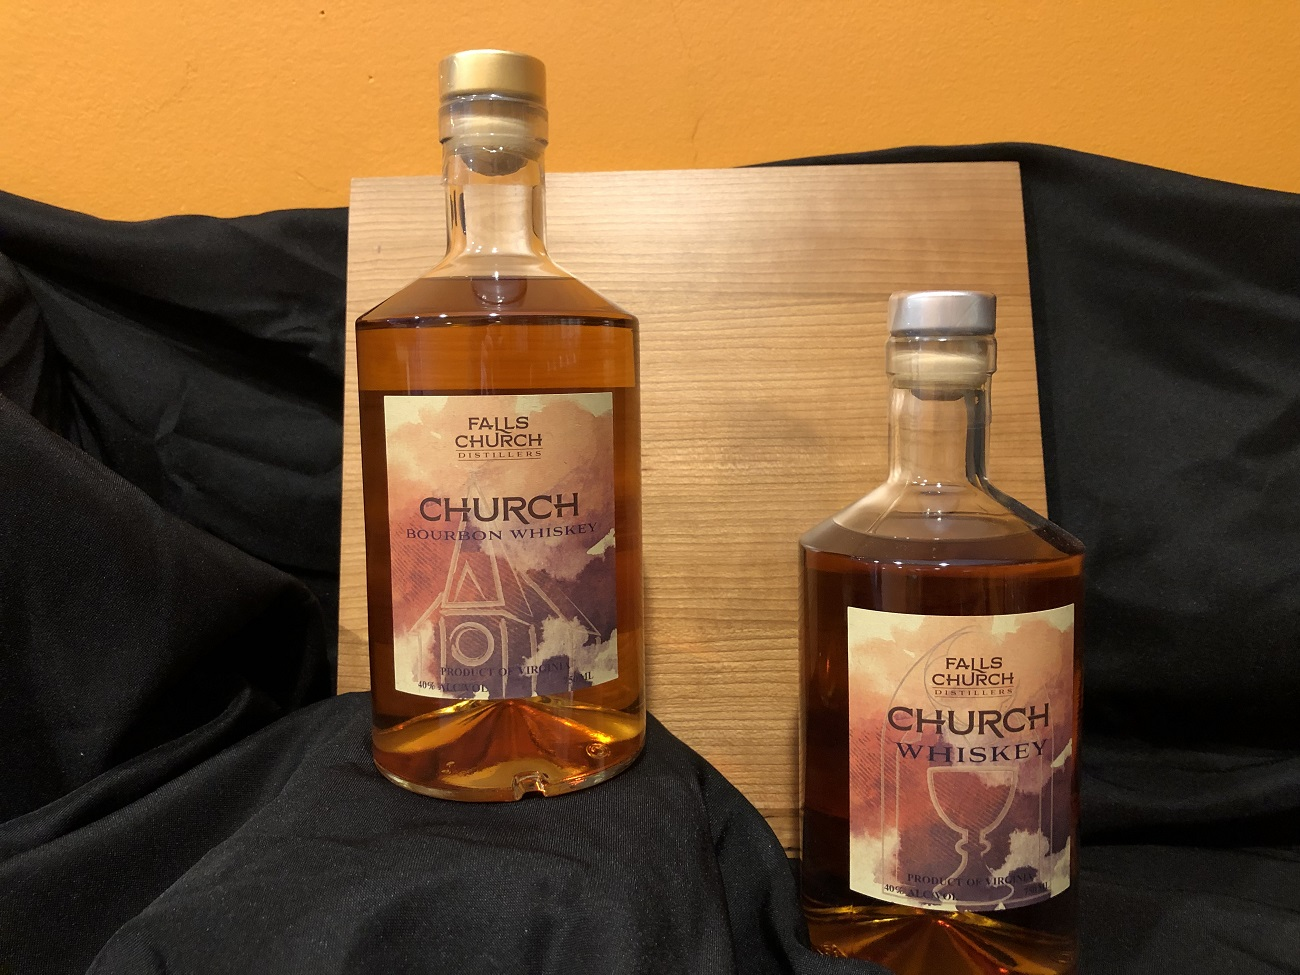 Falls Church Distillery Bourbon whiskey products